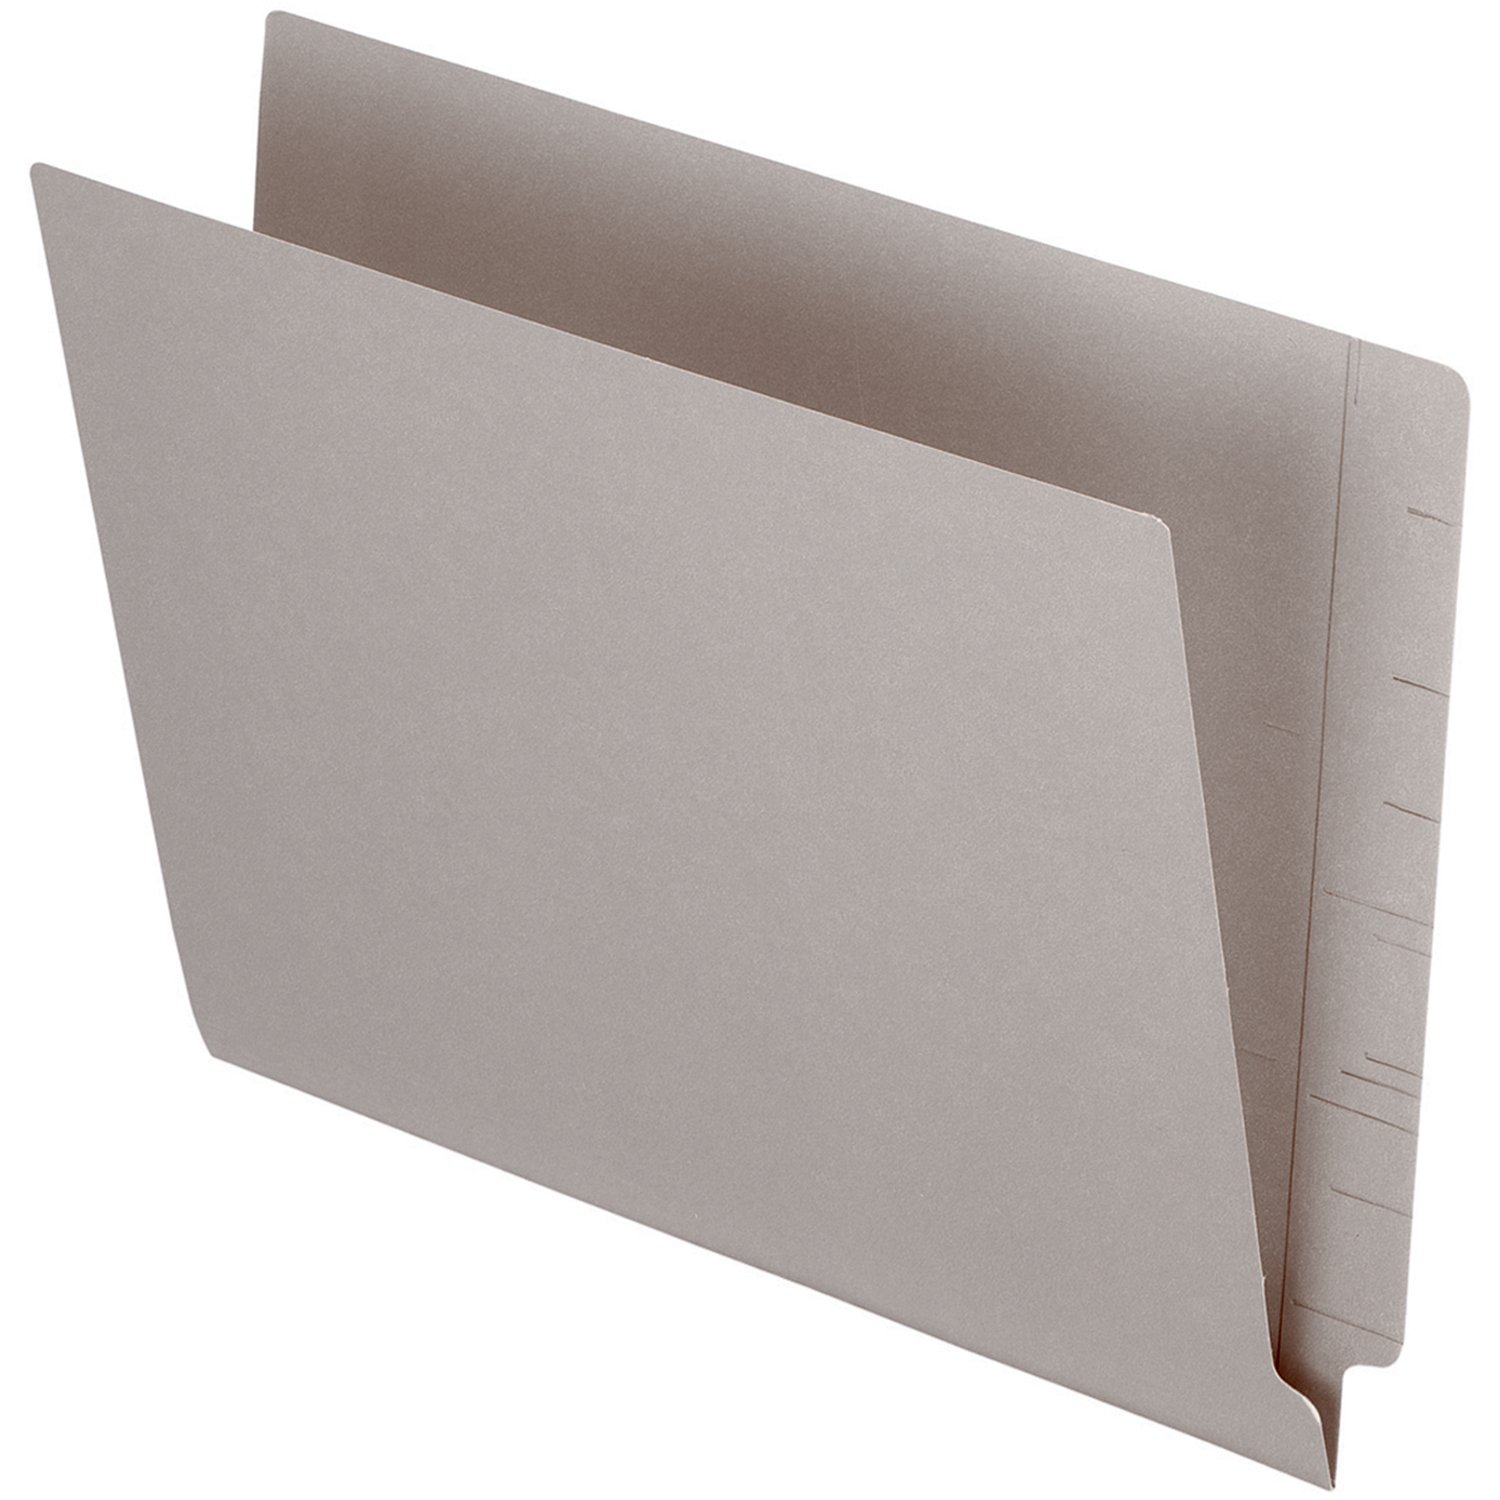 Pendaflex PFXH110DGY Color End Tab Folder-Letter-8 1/2x11 Sheet Size-3/4 Expansion-11 pt. Folder Thickness-Gray-Recycled-100/Box S.P. Richards CA